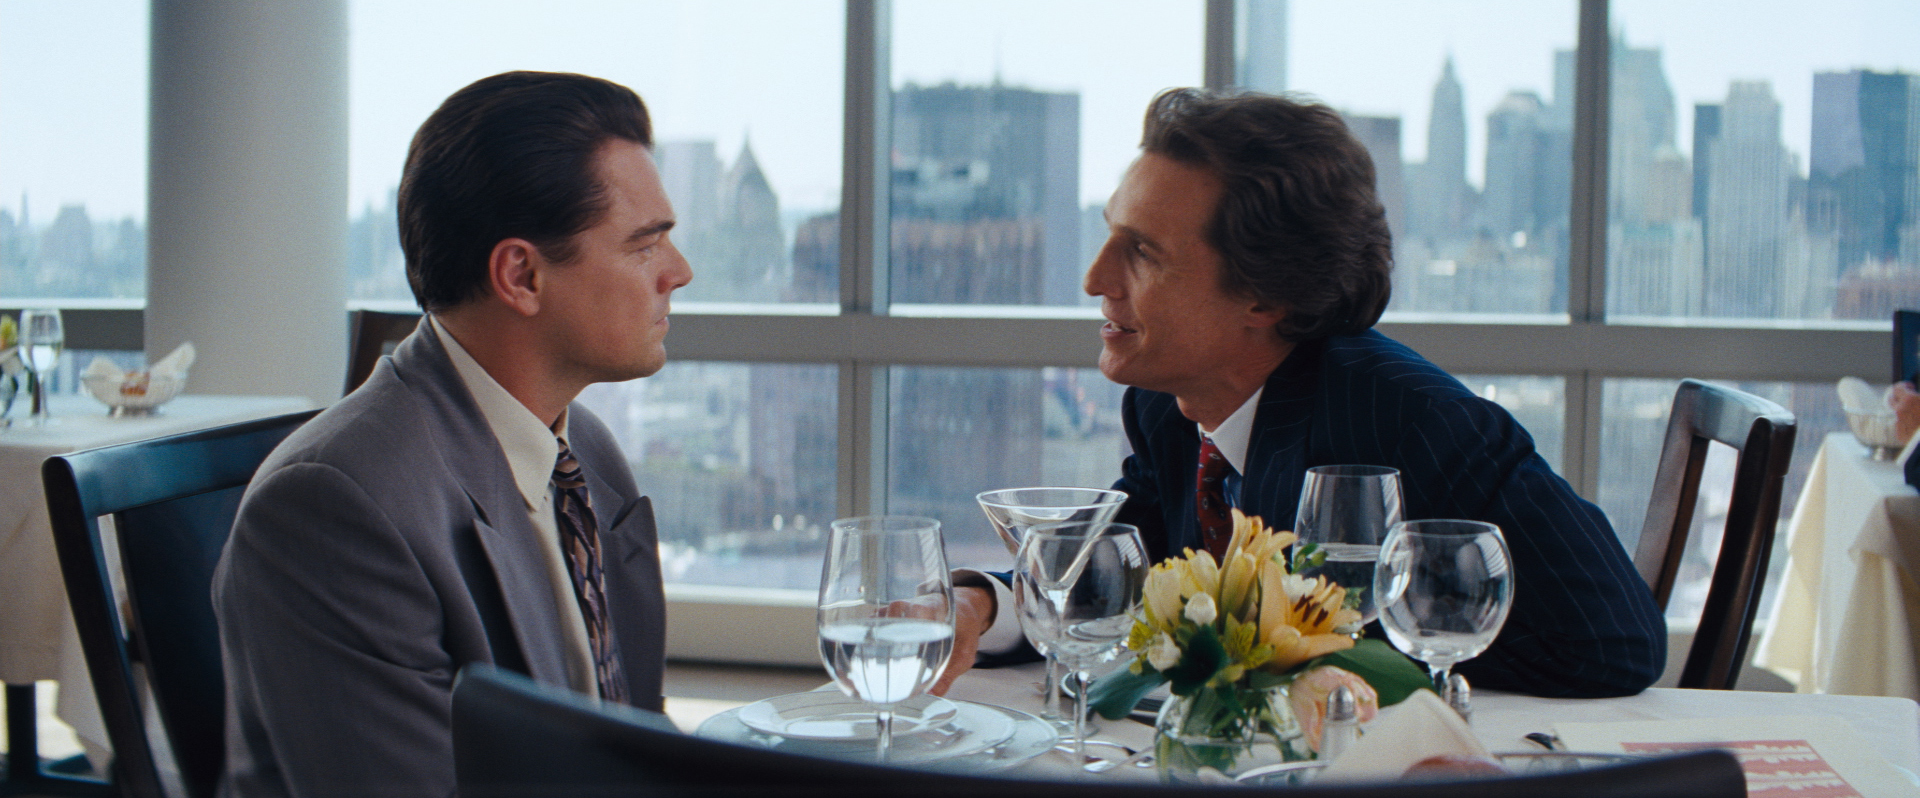 Image result for matthew mcconaughey the wolf of wall street